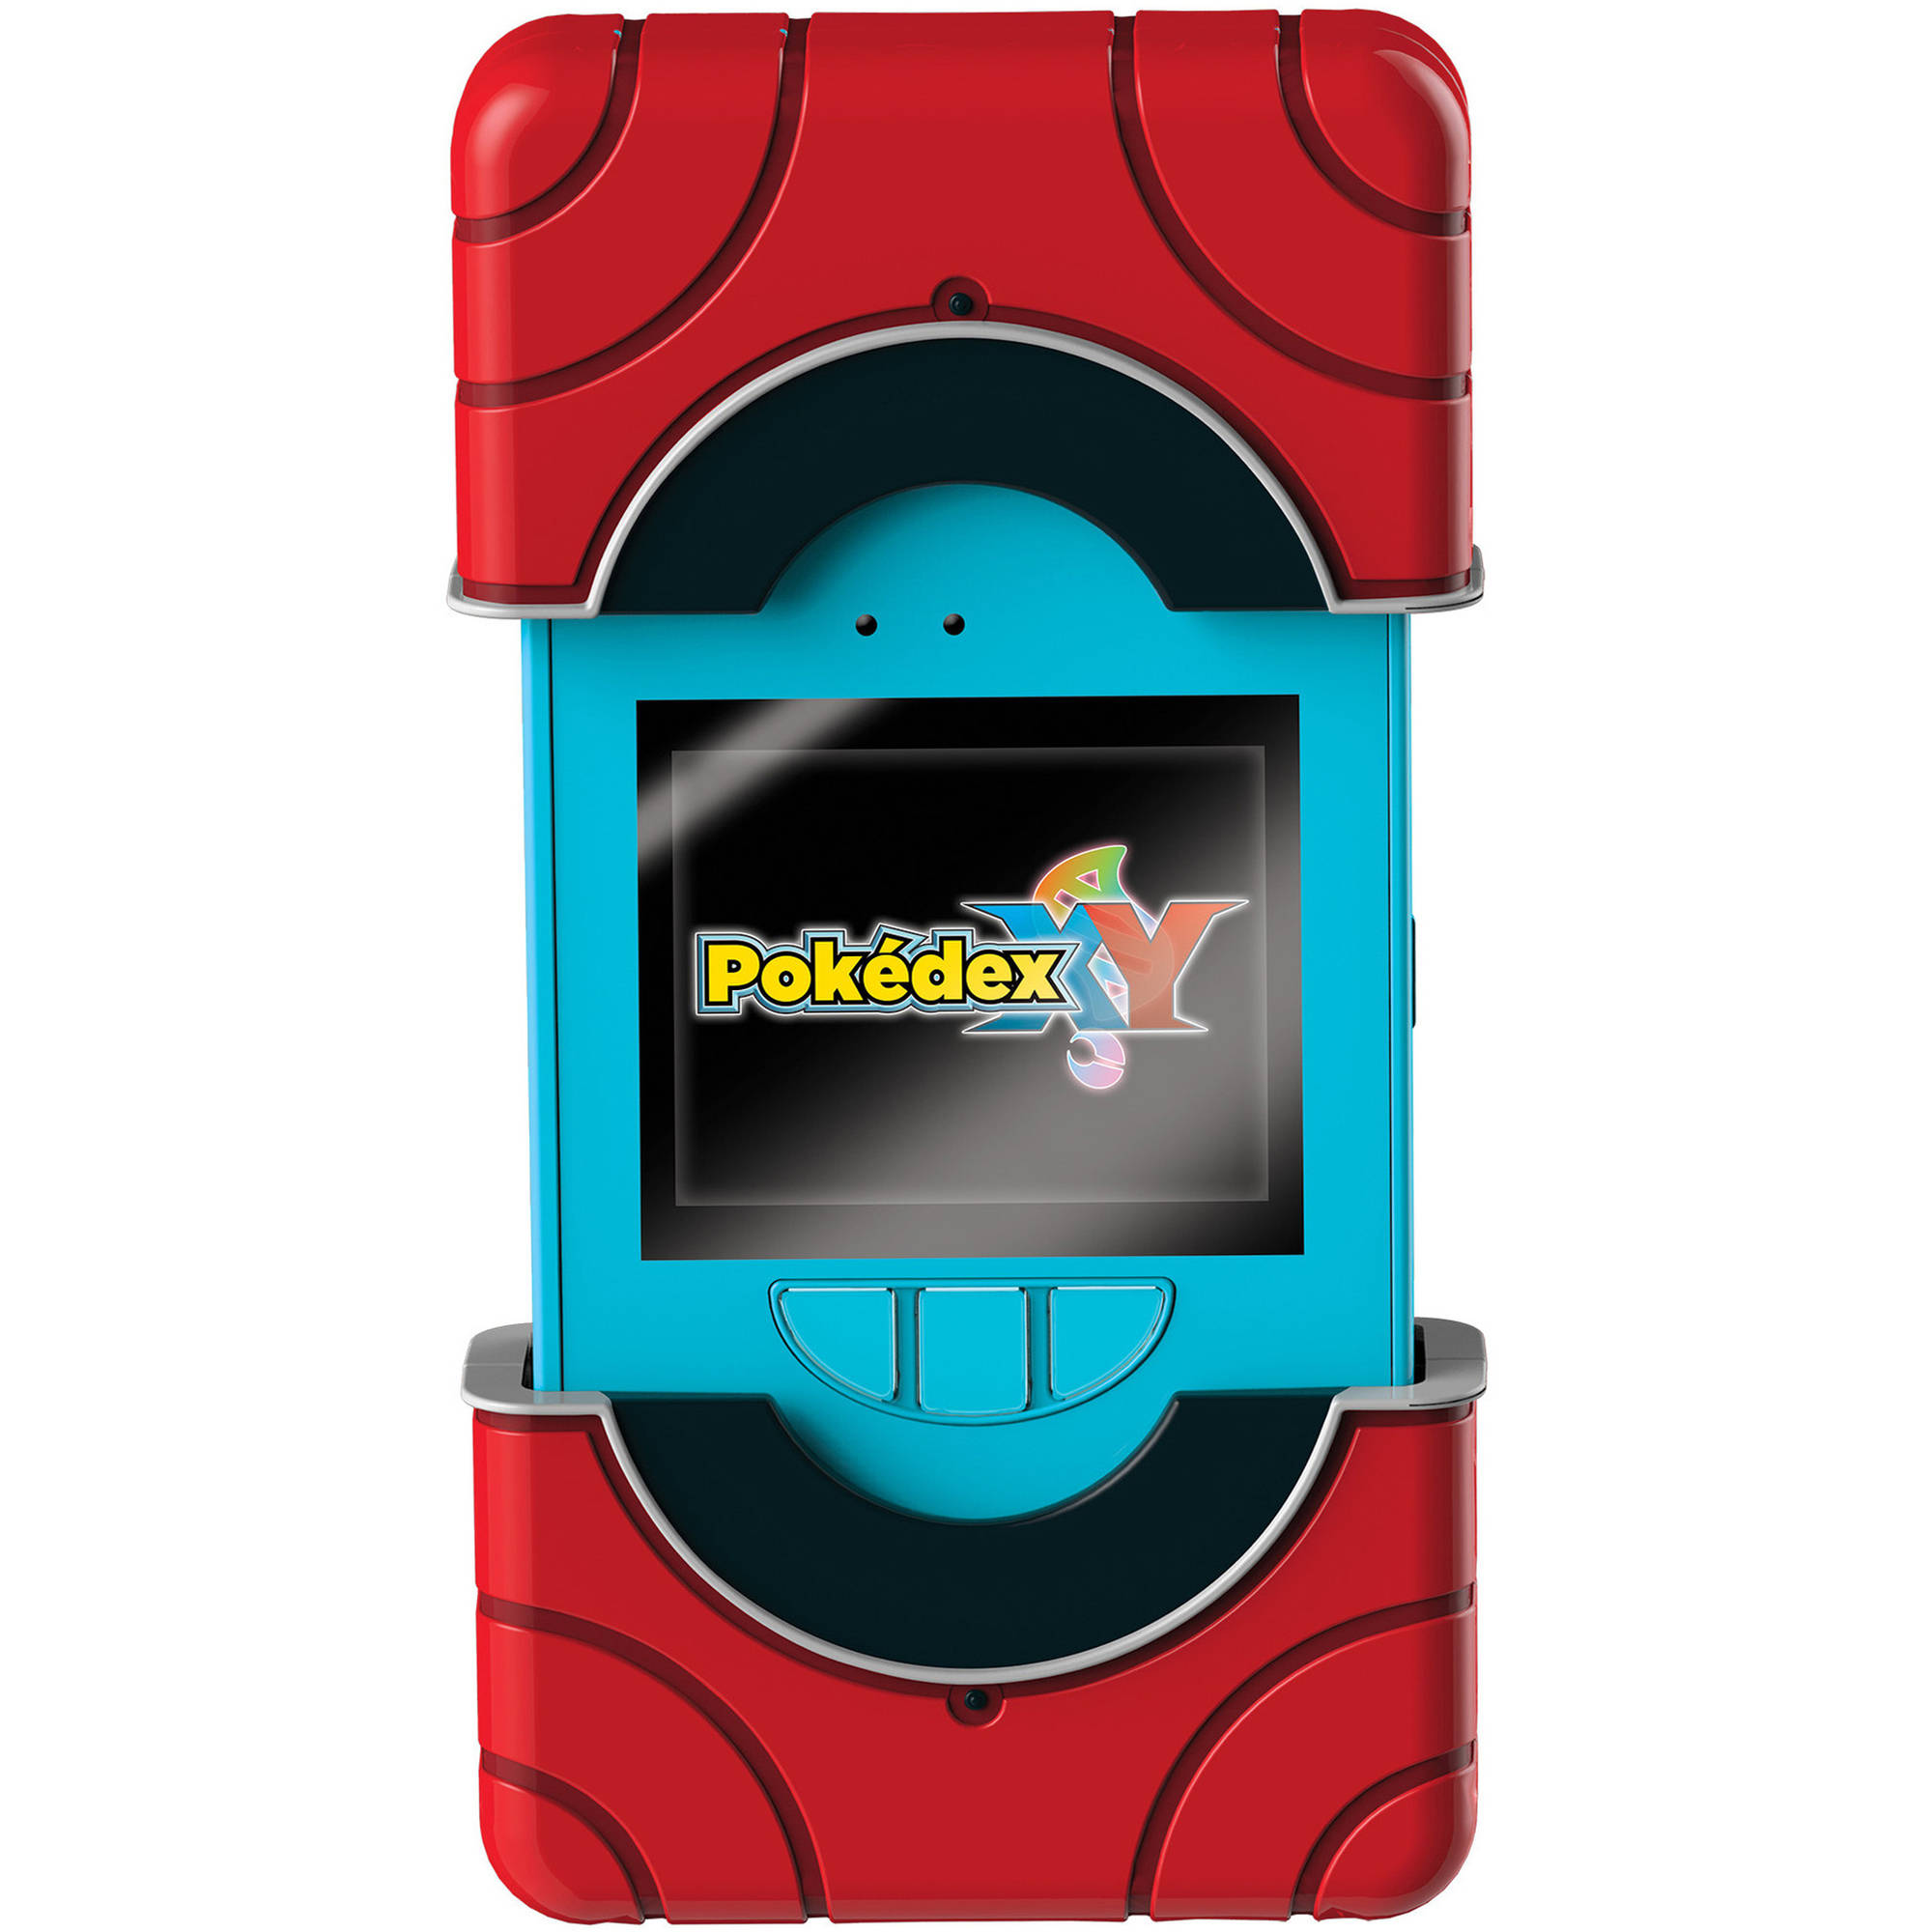 pokedex birthday card ; afaf0c16-8049-4cde-b27b-71e8da4201e2_1